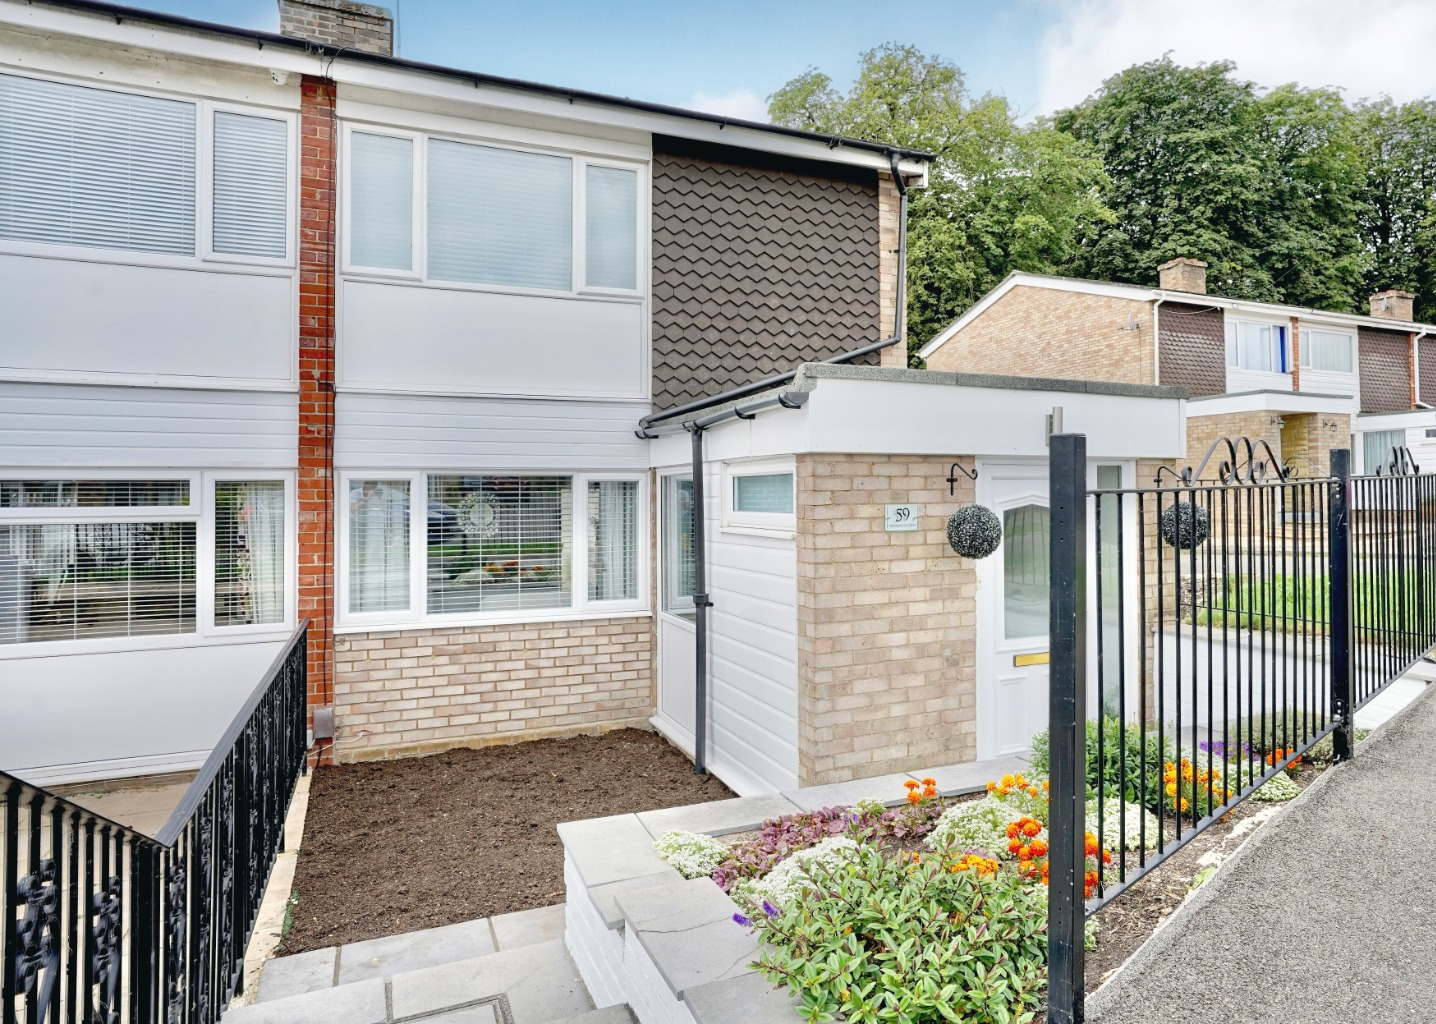 3 bed end of terrace house for sale in Wilkinson Close, St. Neots - Property Image 1